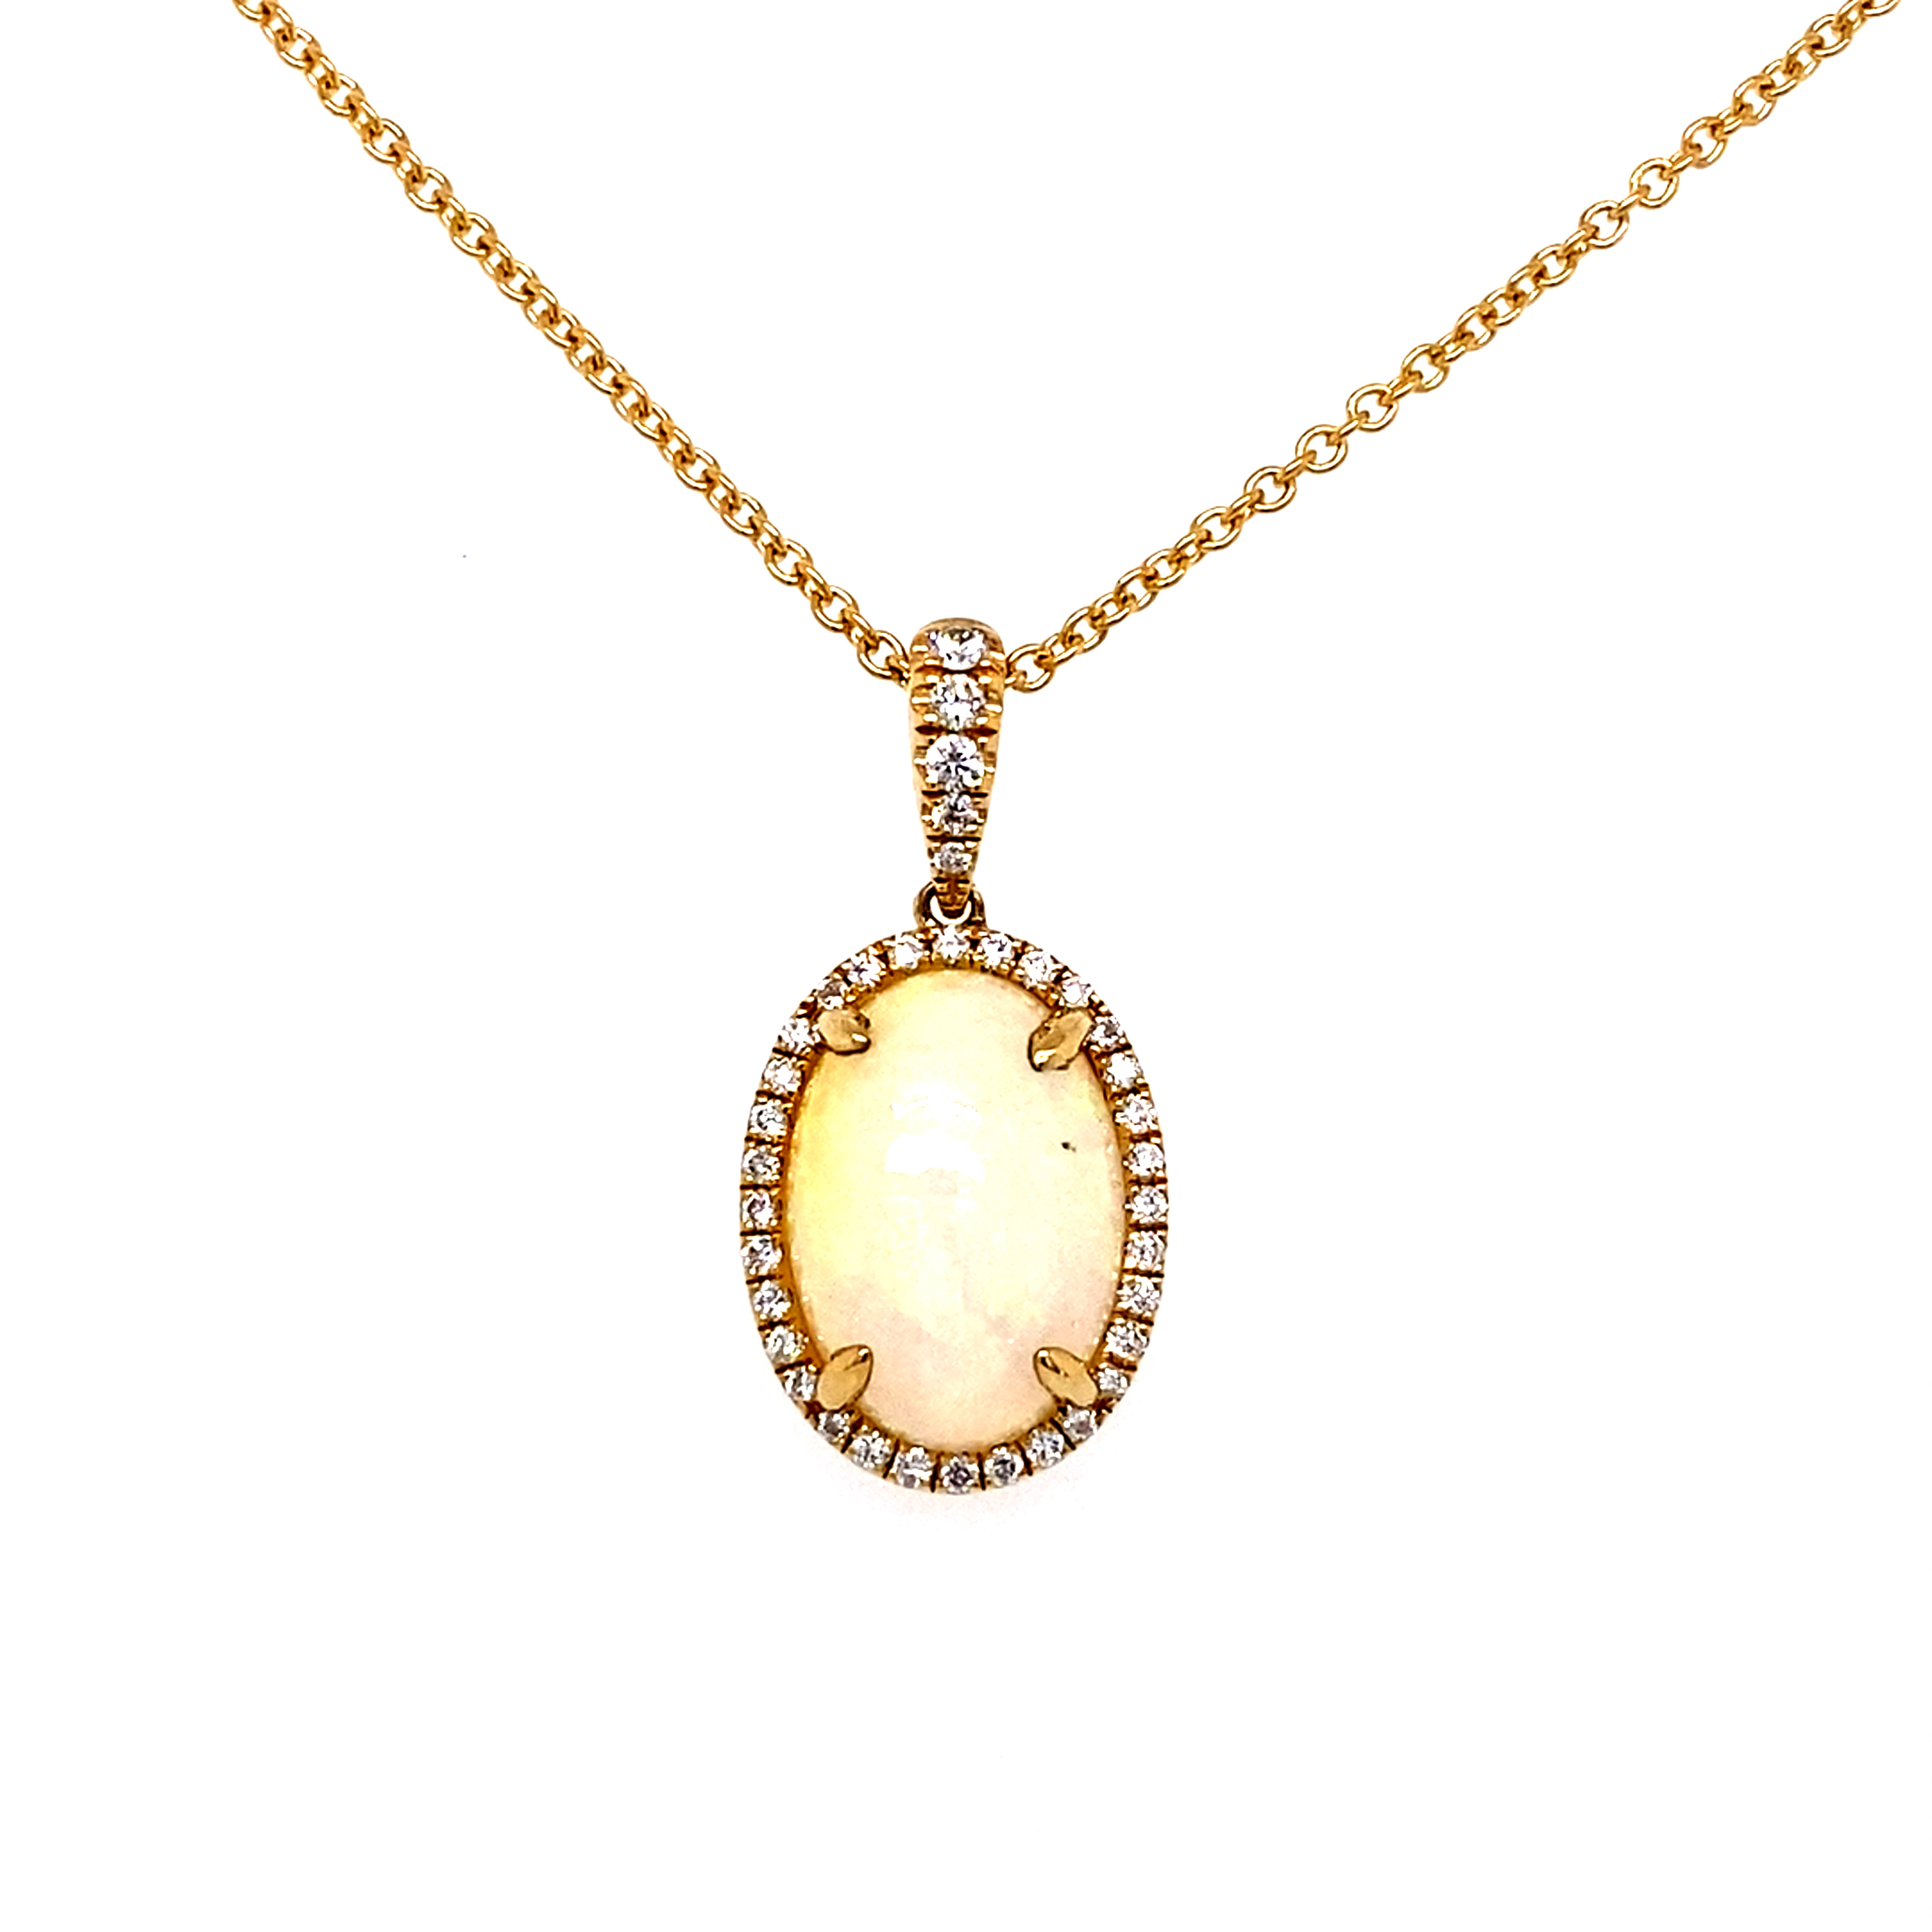 18 Carat Yellow Gold, Opal and Diamond Pendant